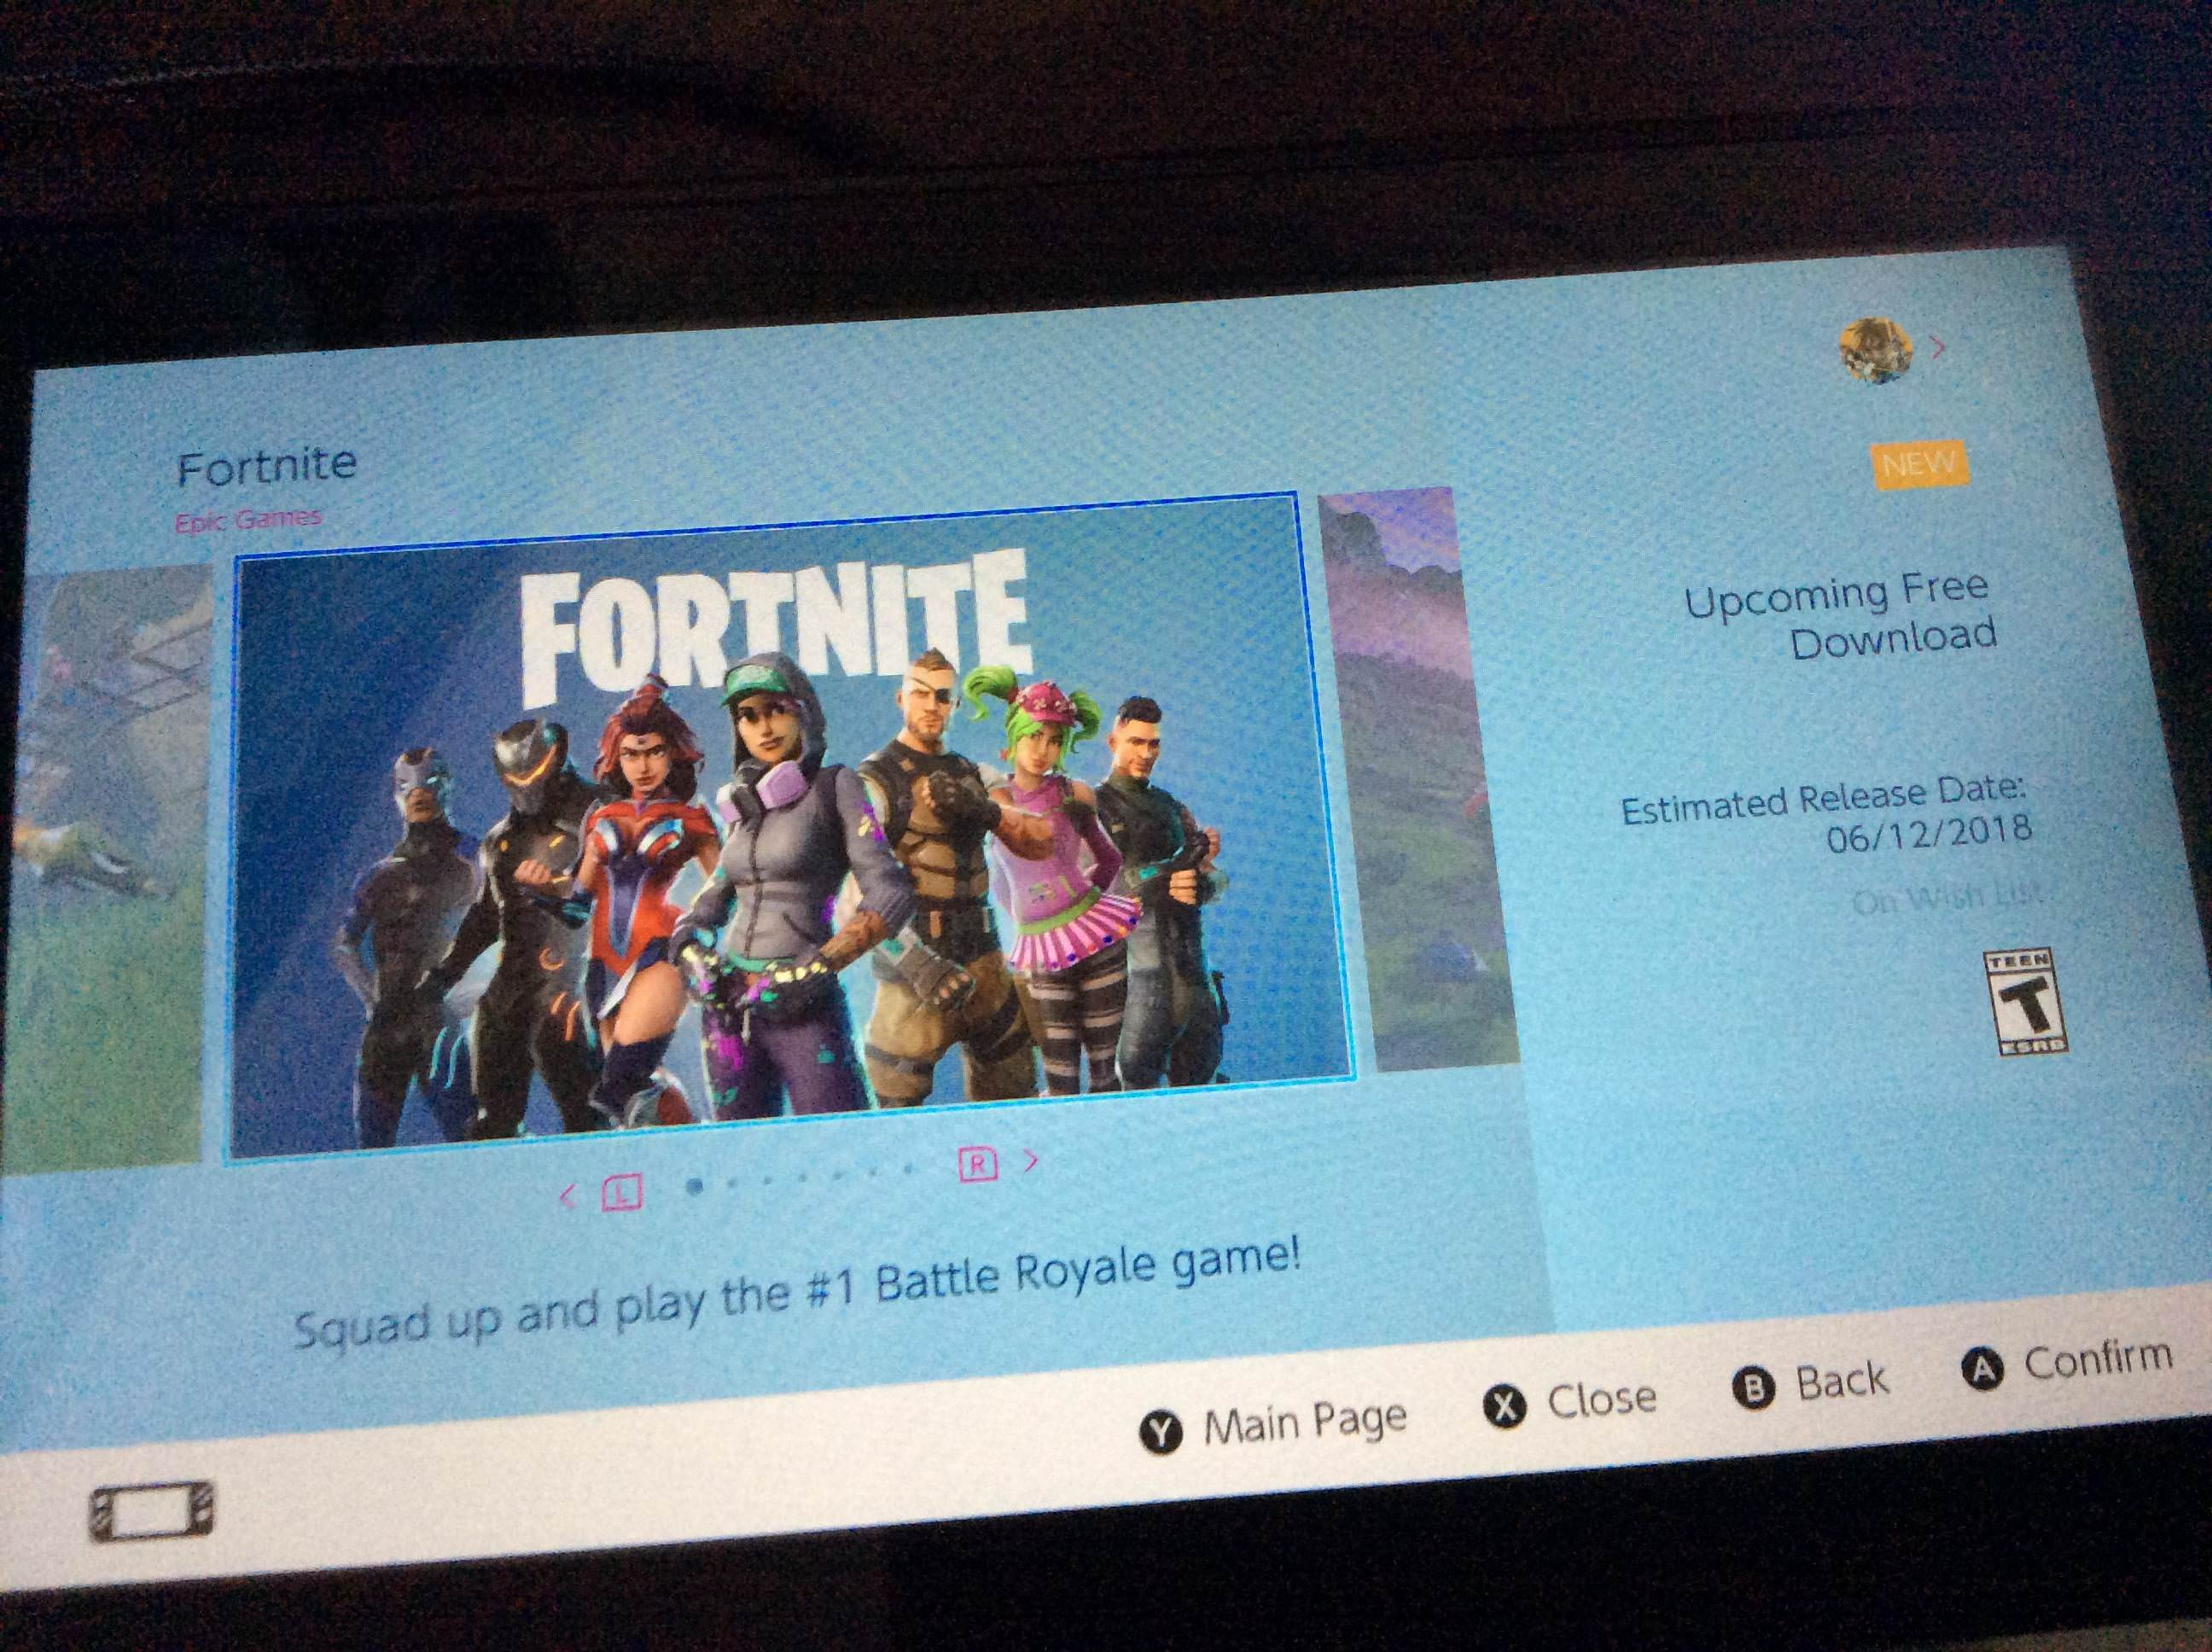 I loaded up Fortnite on the eShop | GBAtemp net - The Independent